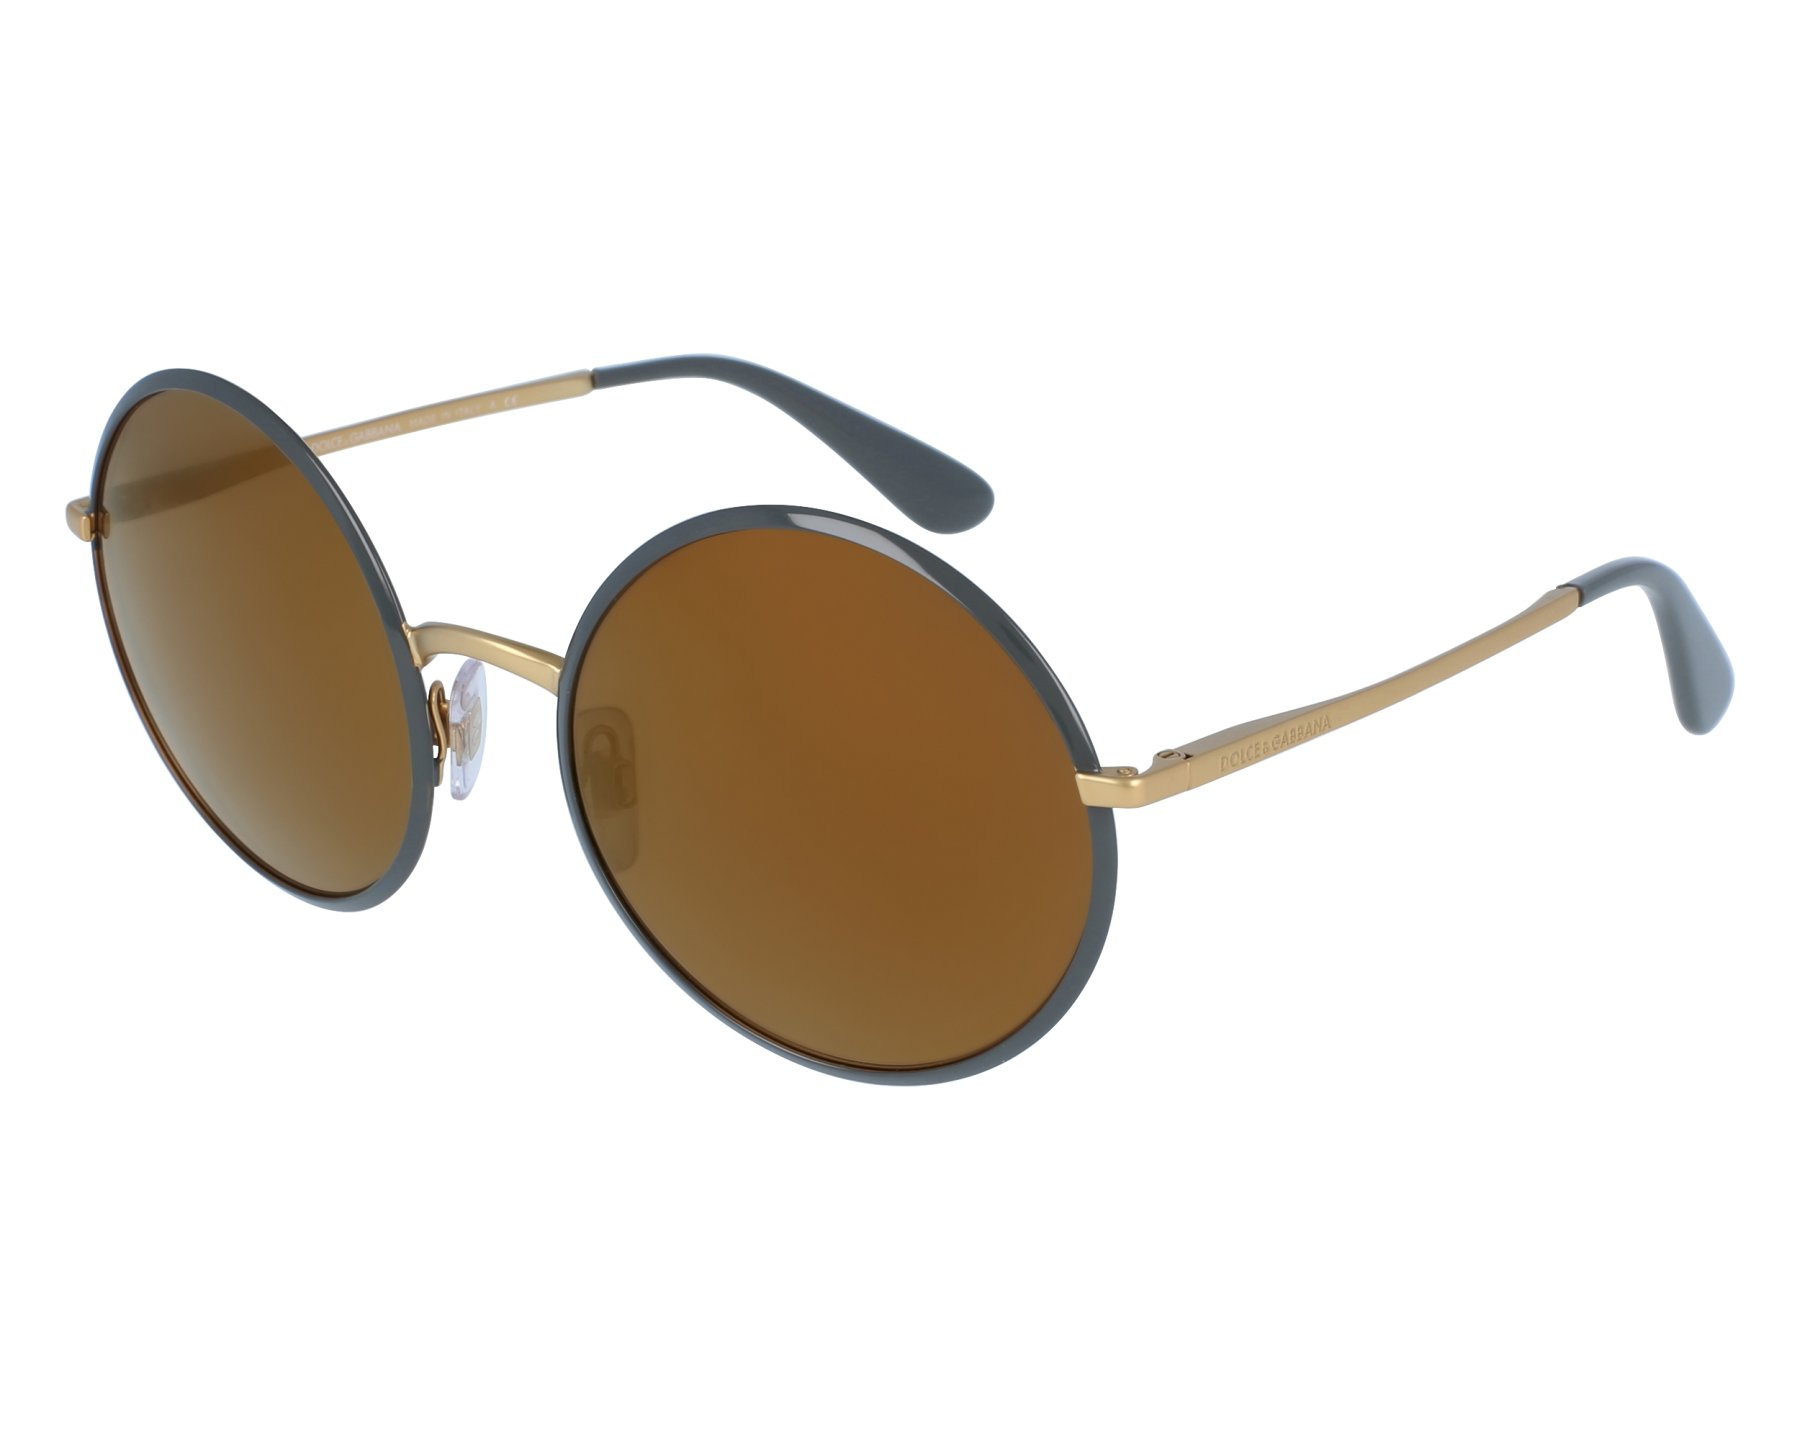 54aaa18bd3a Sunglasses Dolce   Gabbana DG-2155 1295 F9 56-20 Grey Gold front